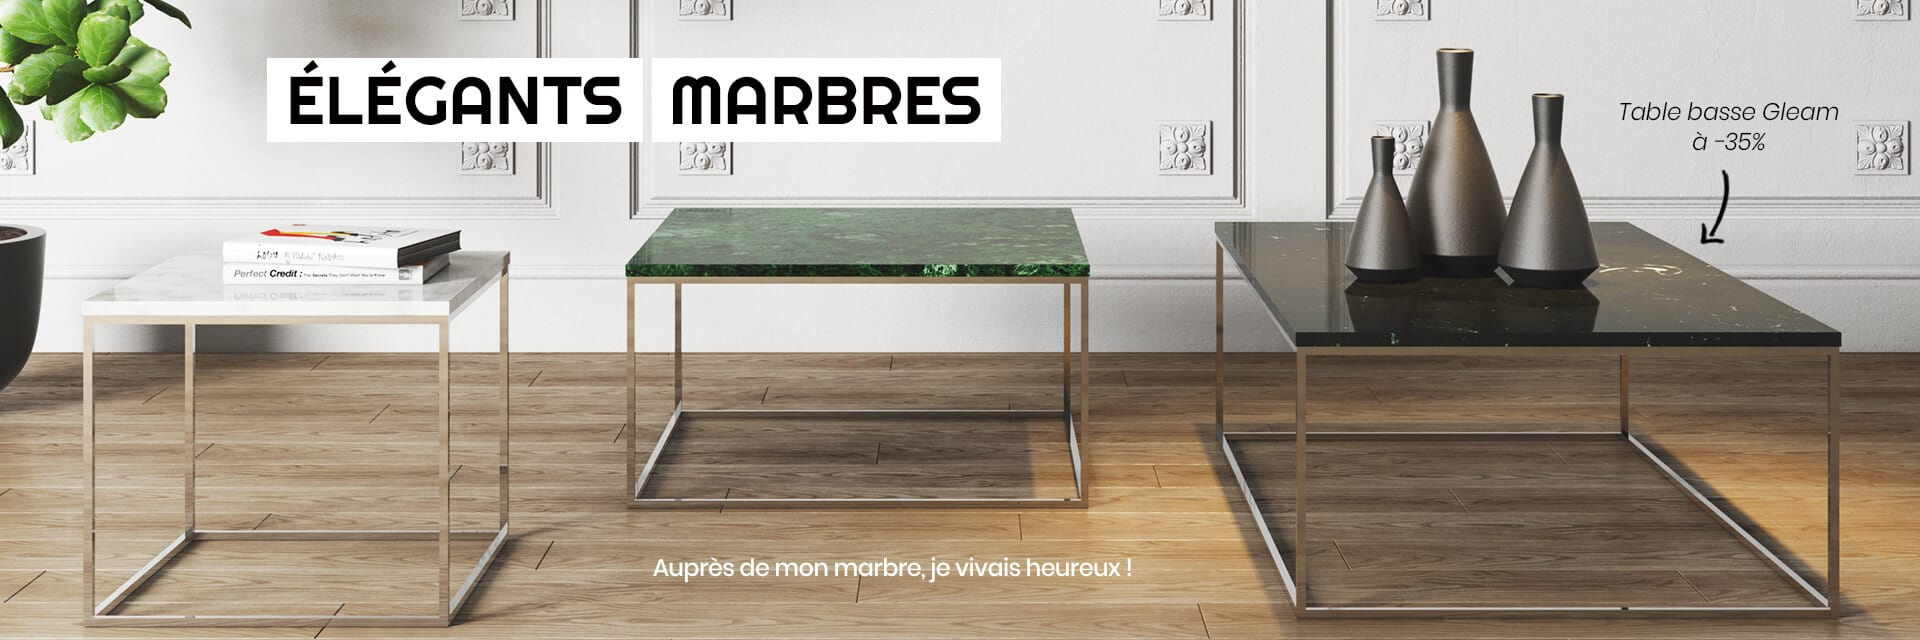 selection marbre home page zeeloft